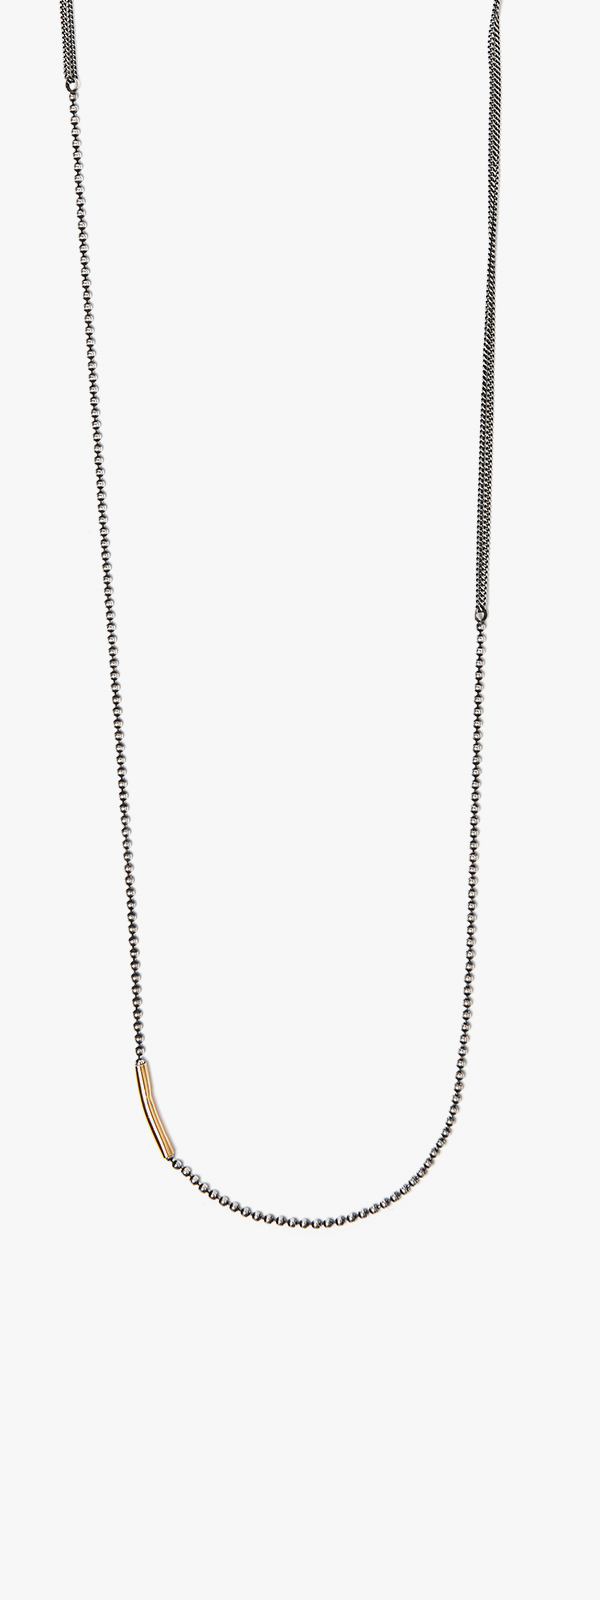 Image of Mixed Metal Necklace 091